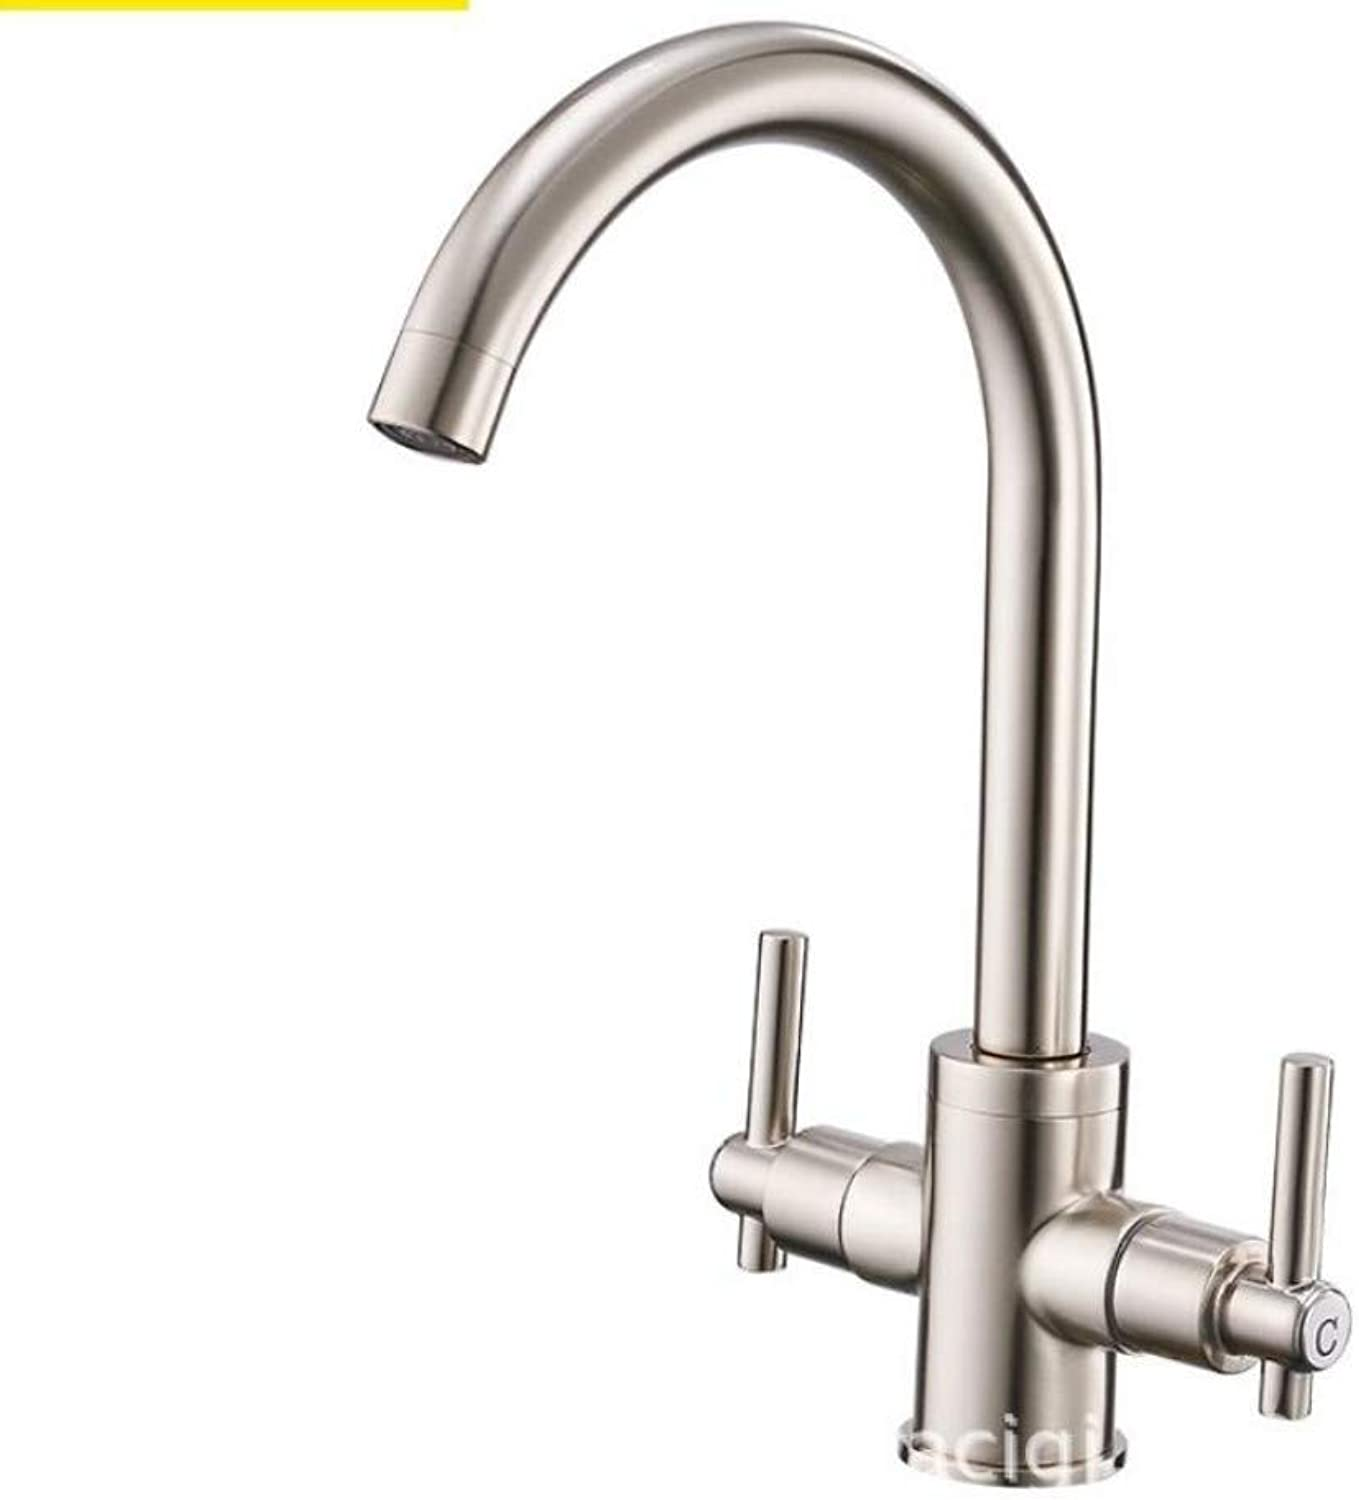 Bathroom Sink Basin Lever Mixer Tap Double Handle Double Open Kitchen Hot and Cold Faucet Brushed Sink Faucet